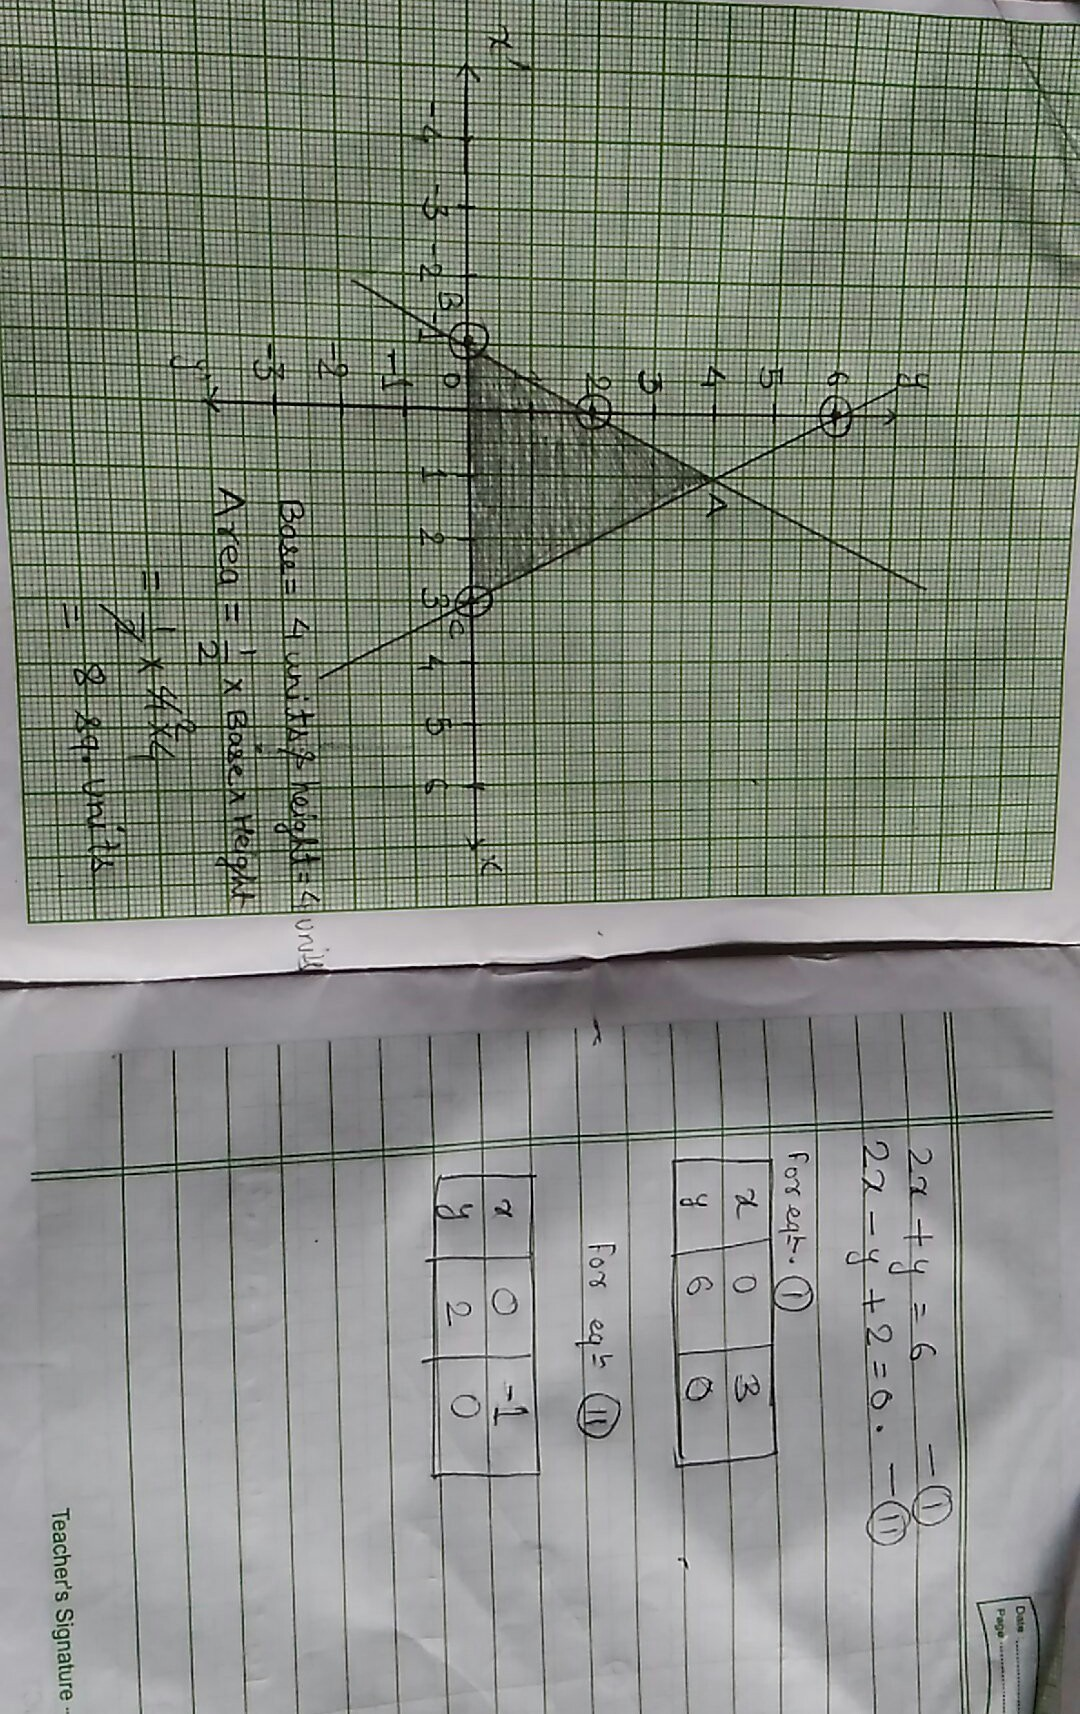 Draw The Graph Of 2x Y 6 And 2x Y 2 0 Shaded The Region